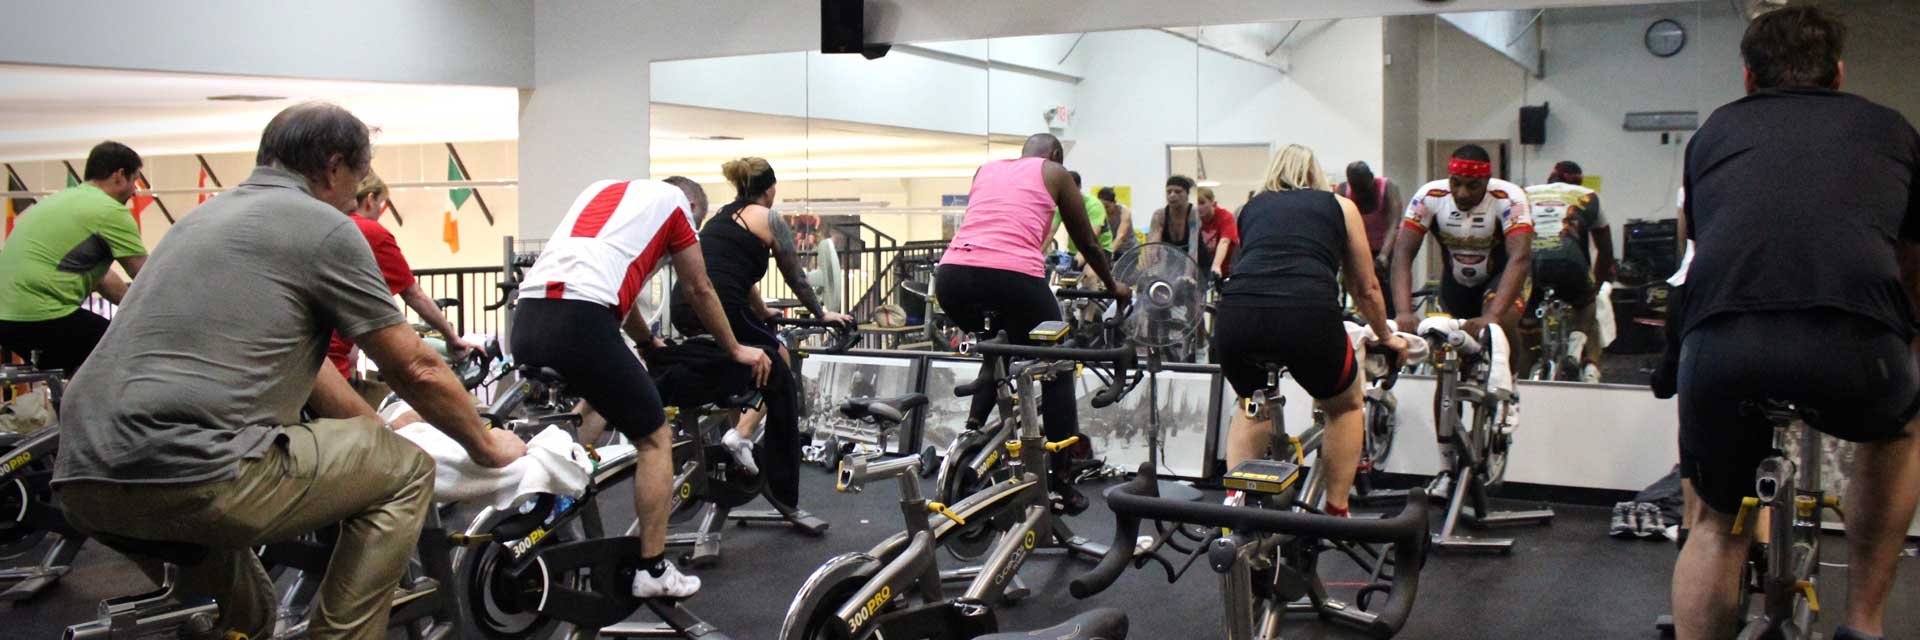 Action Sports Indoor Spin CLasses